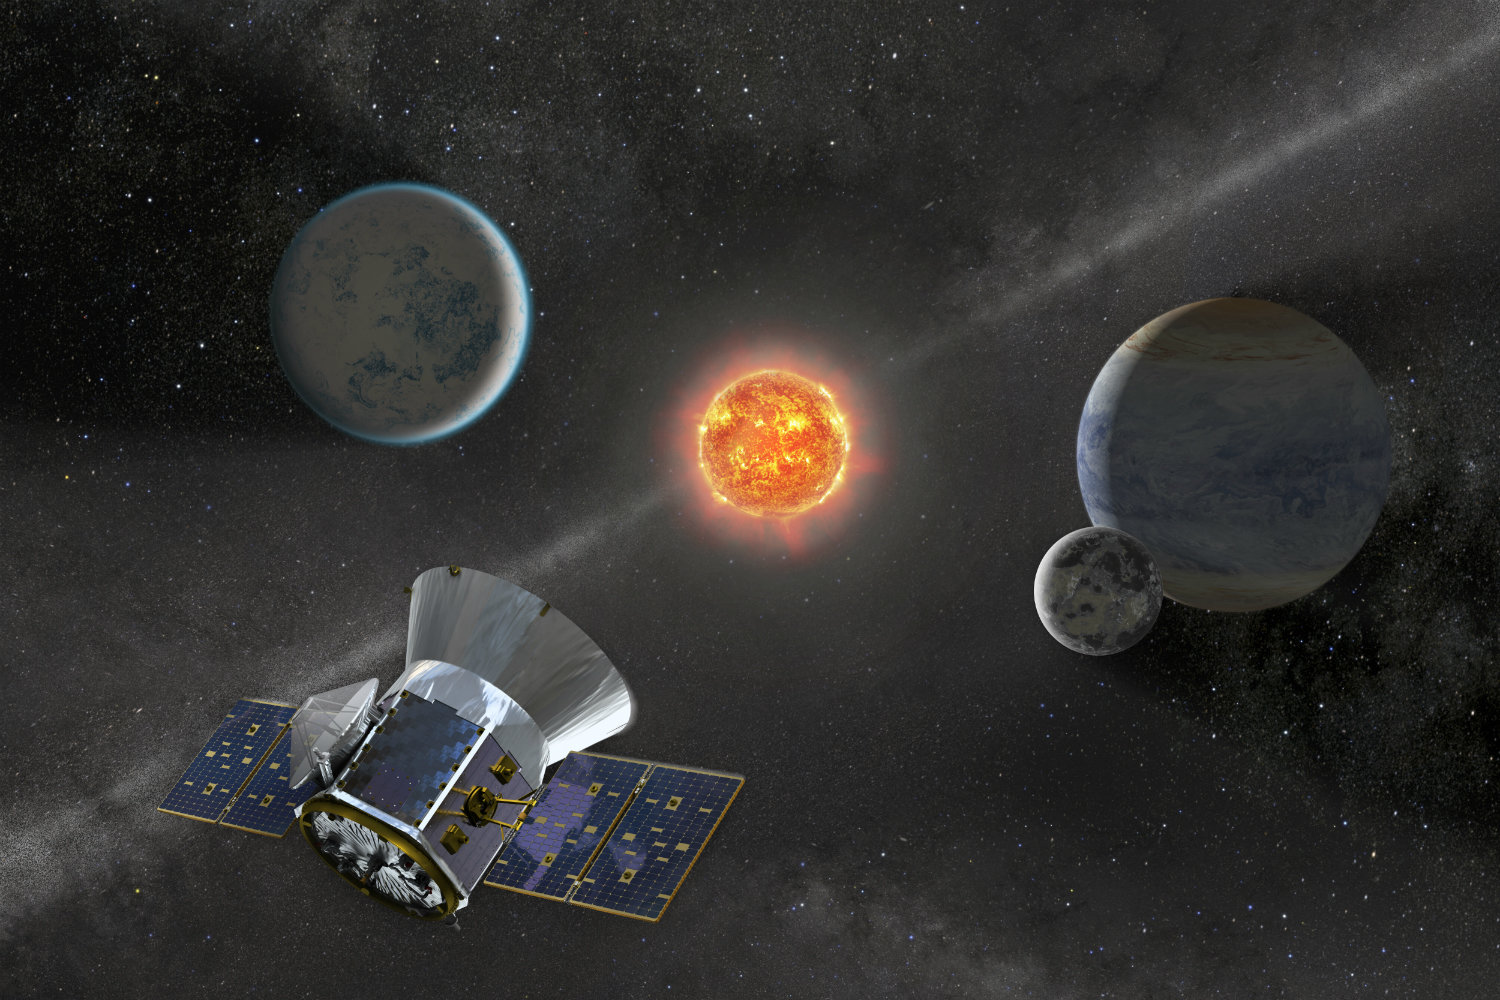 An artist's impression of the TESS spacecraft in space.